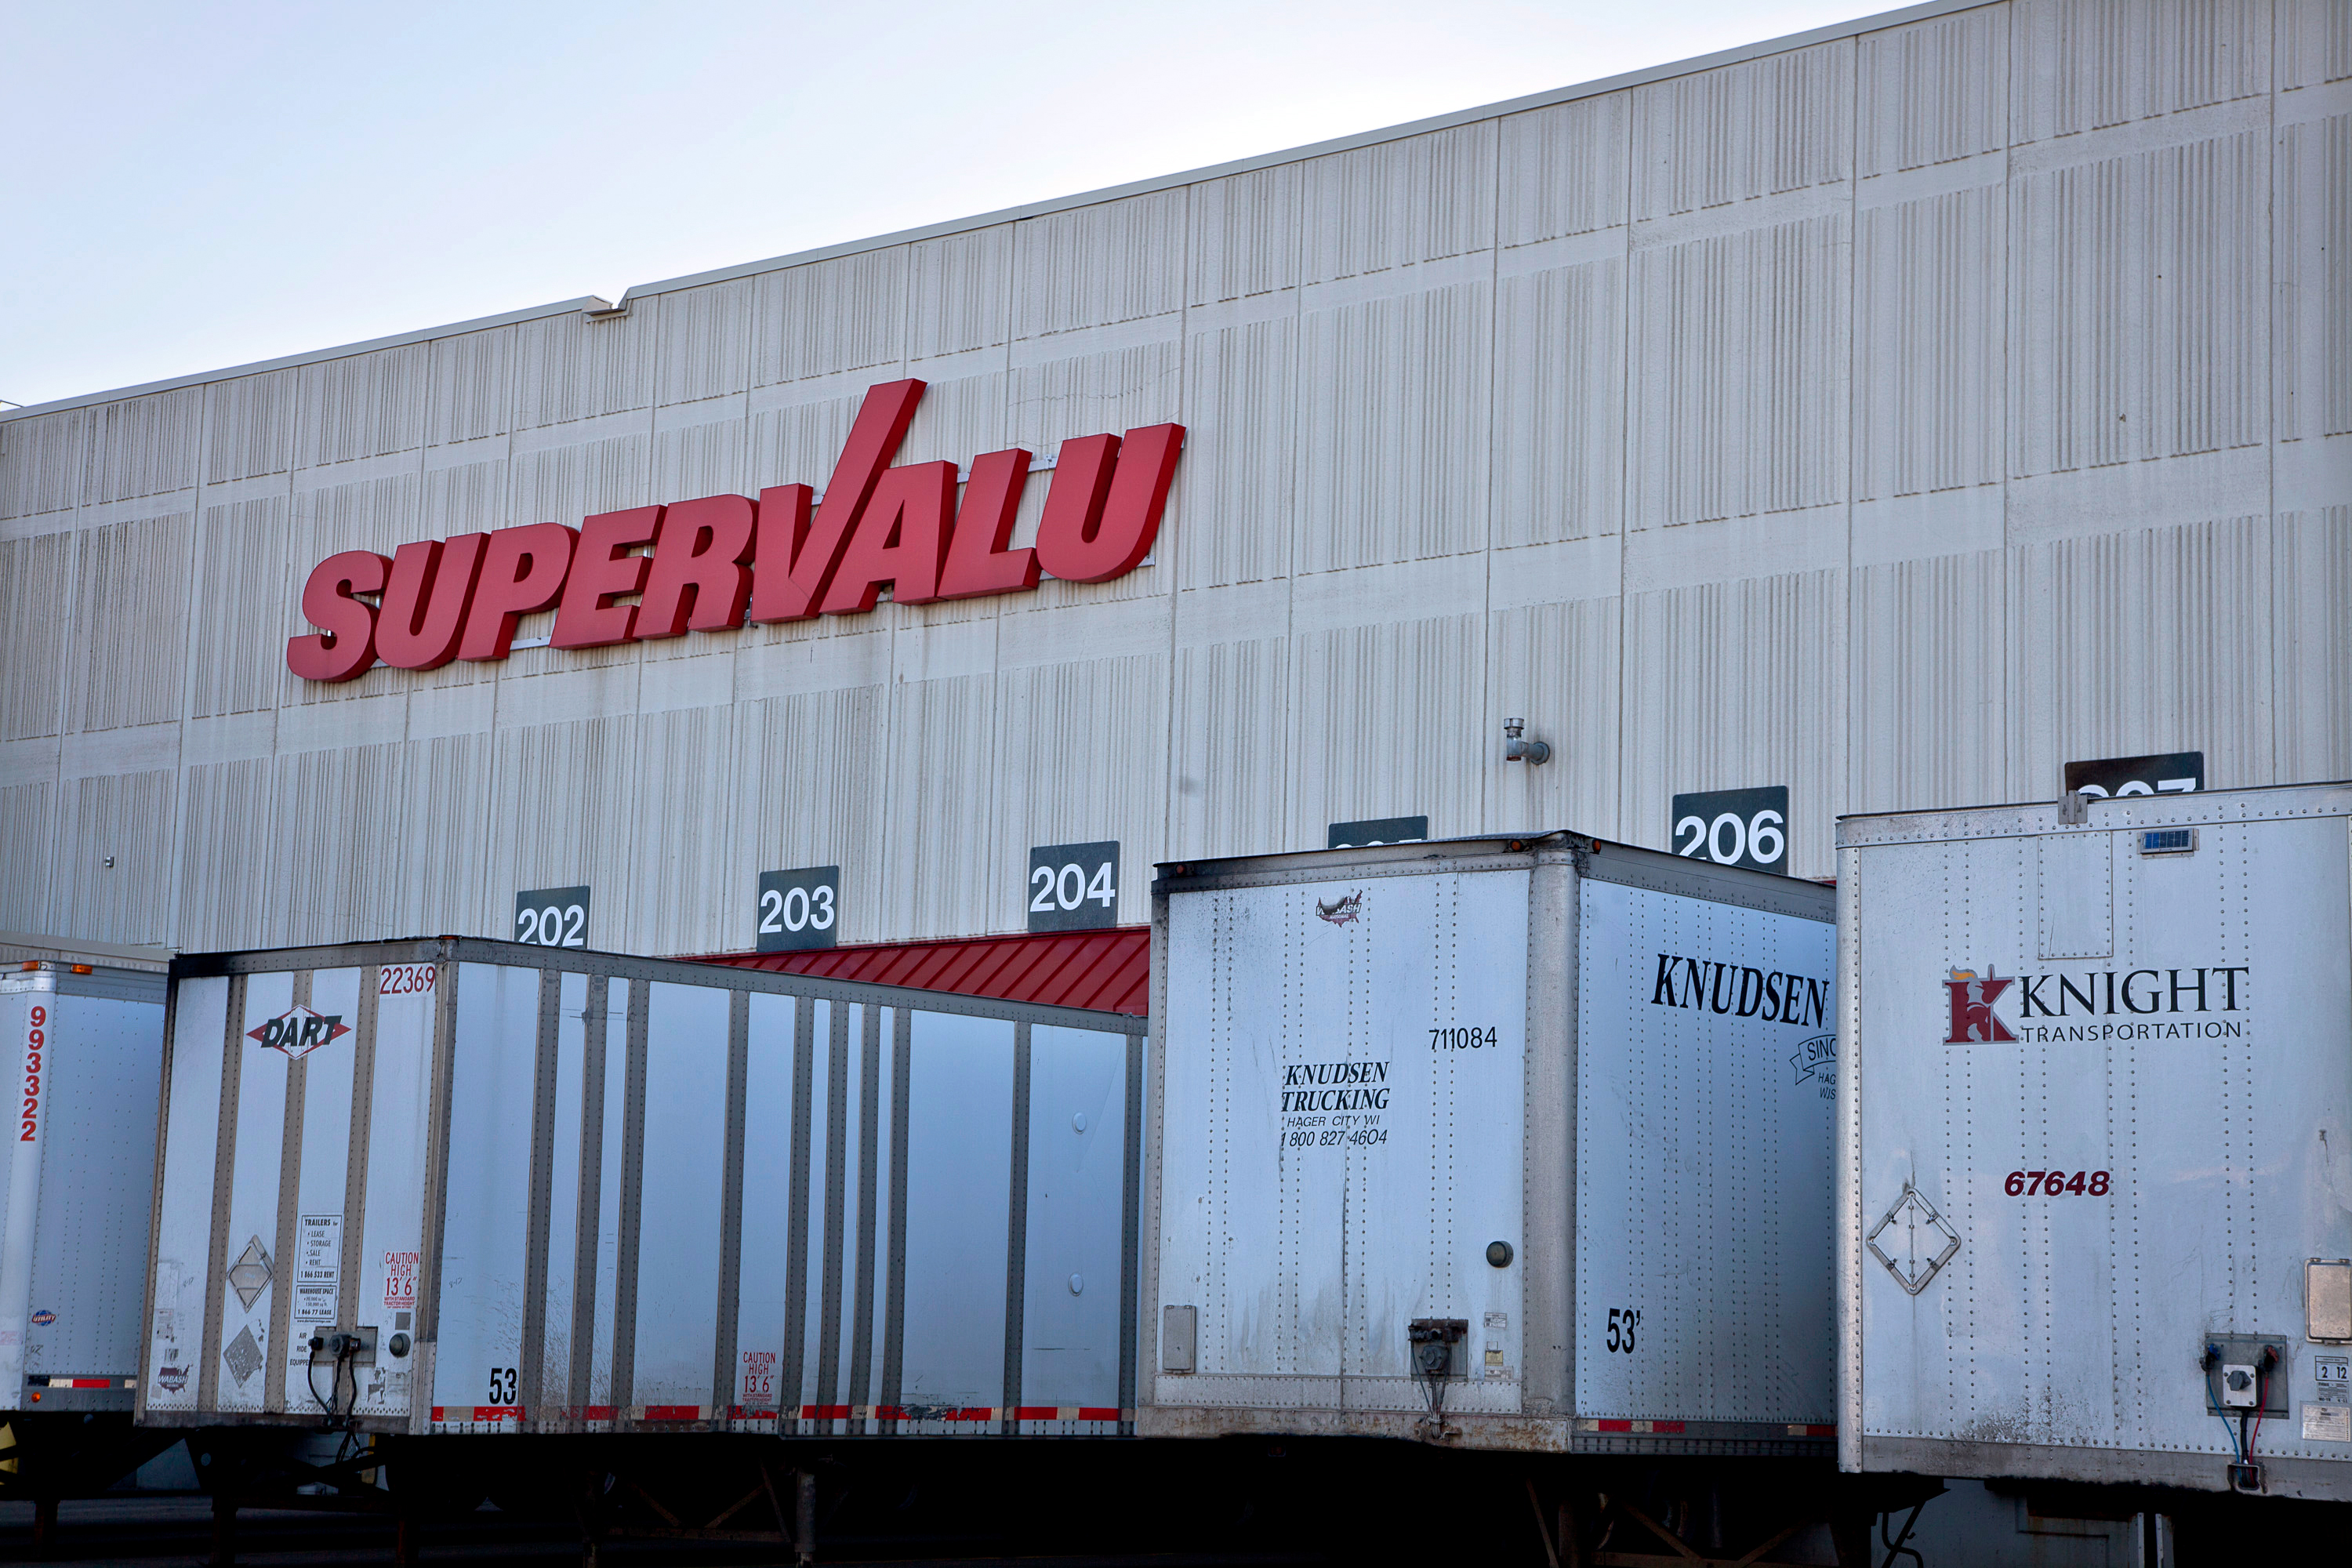 The Supervalu Inc. logo is displayed at a distribution center in Hopkins, Minnesota.